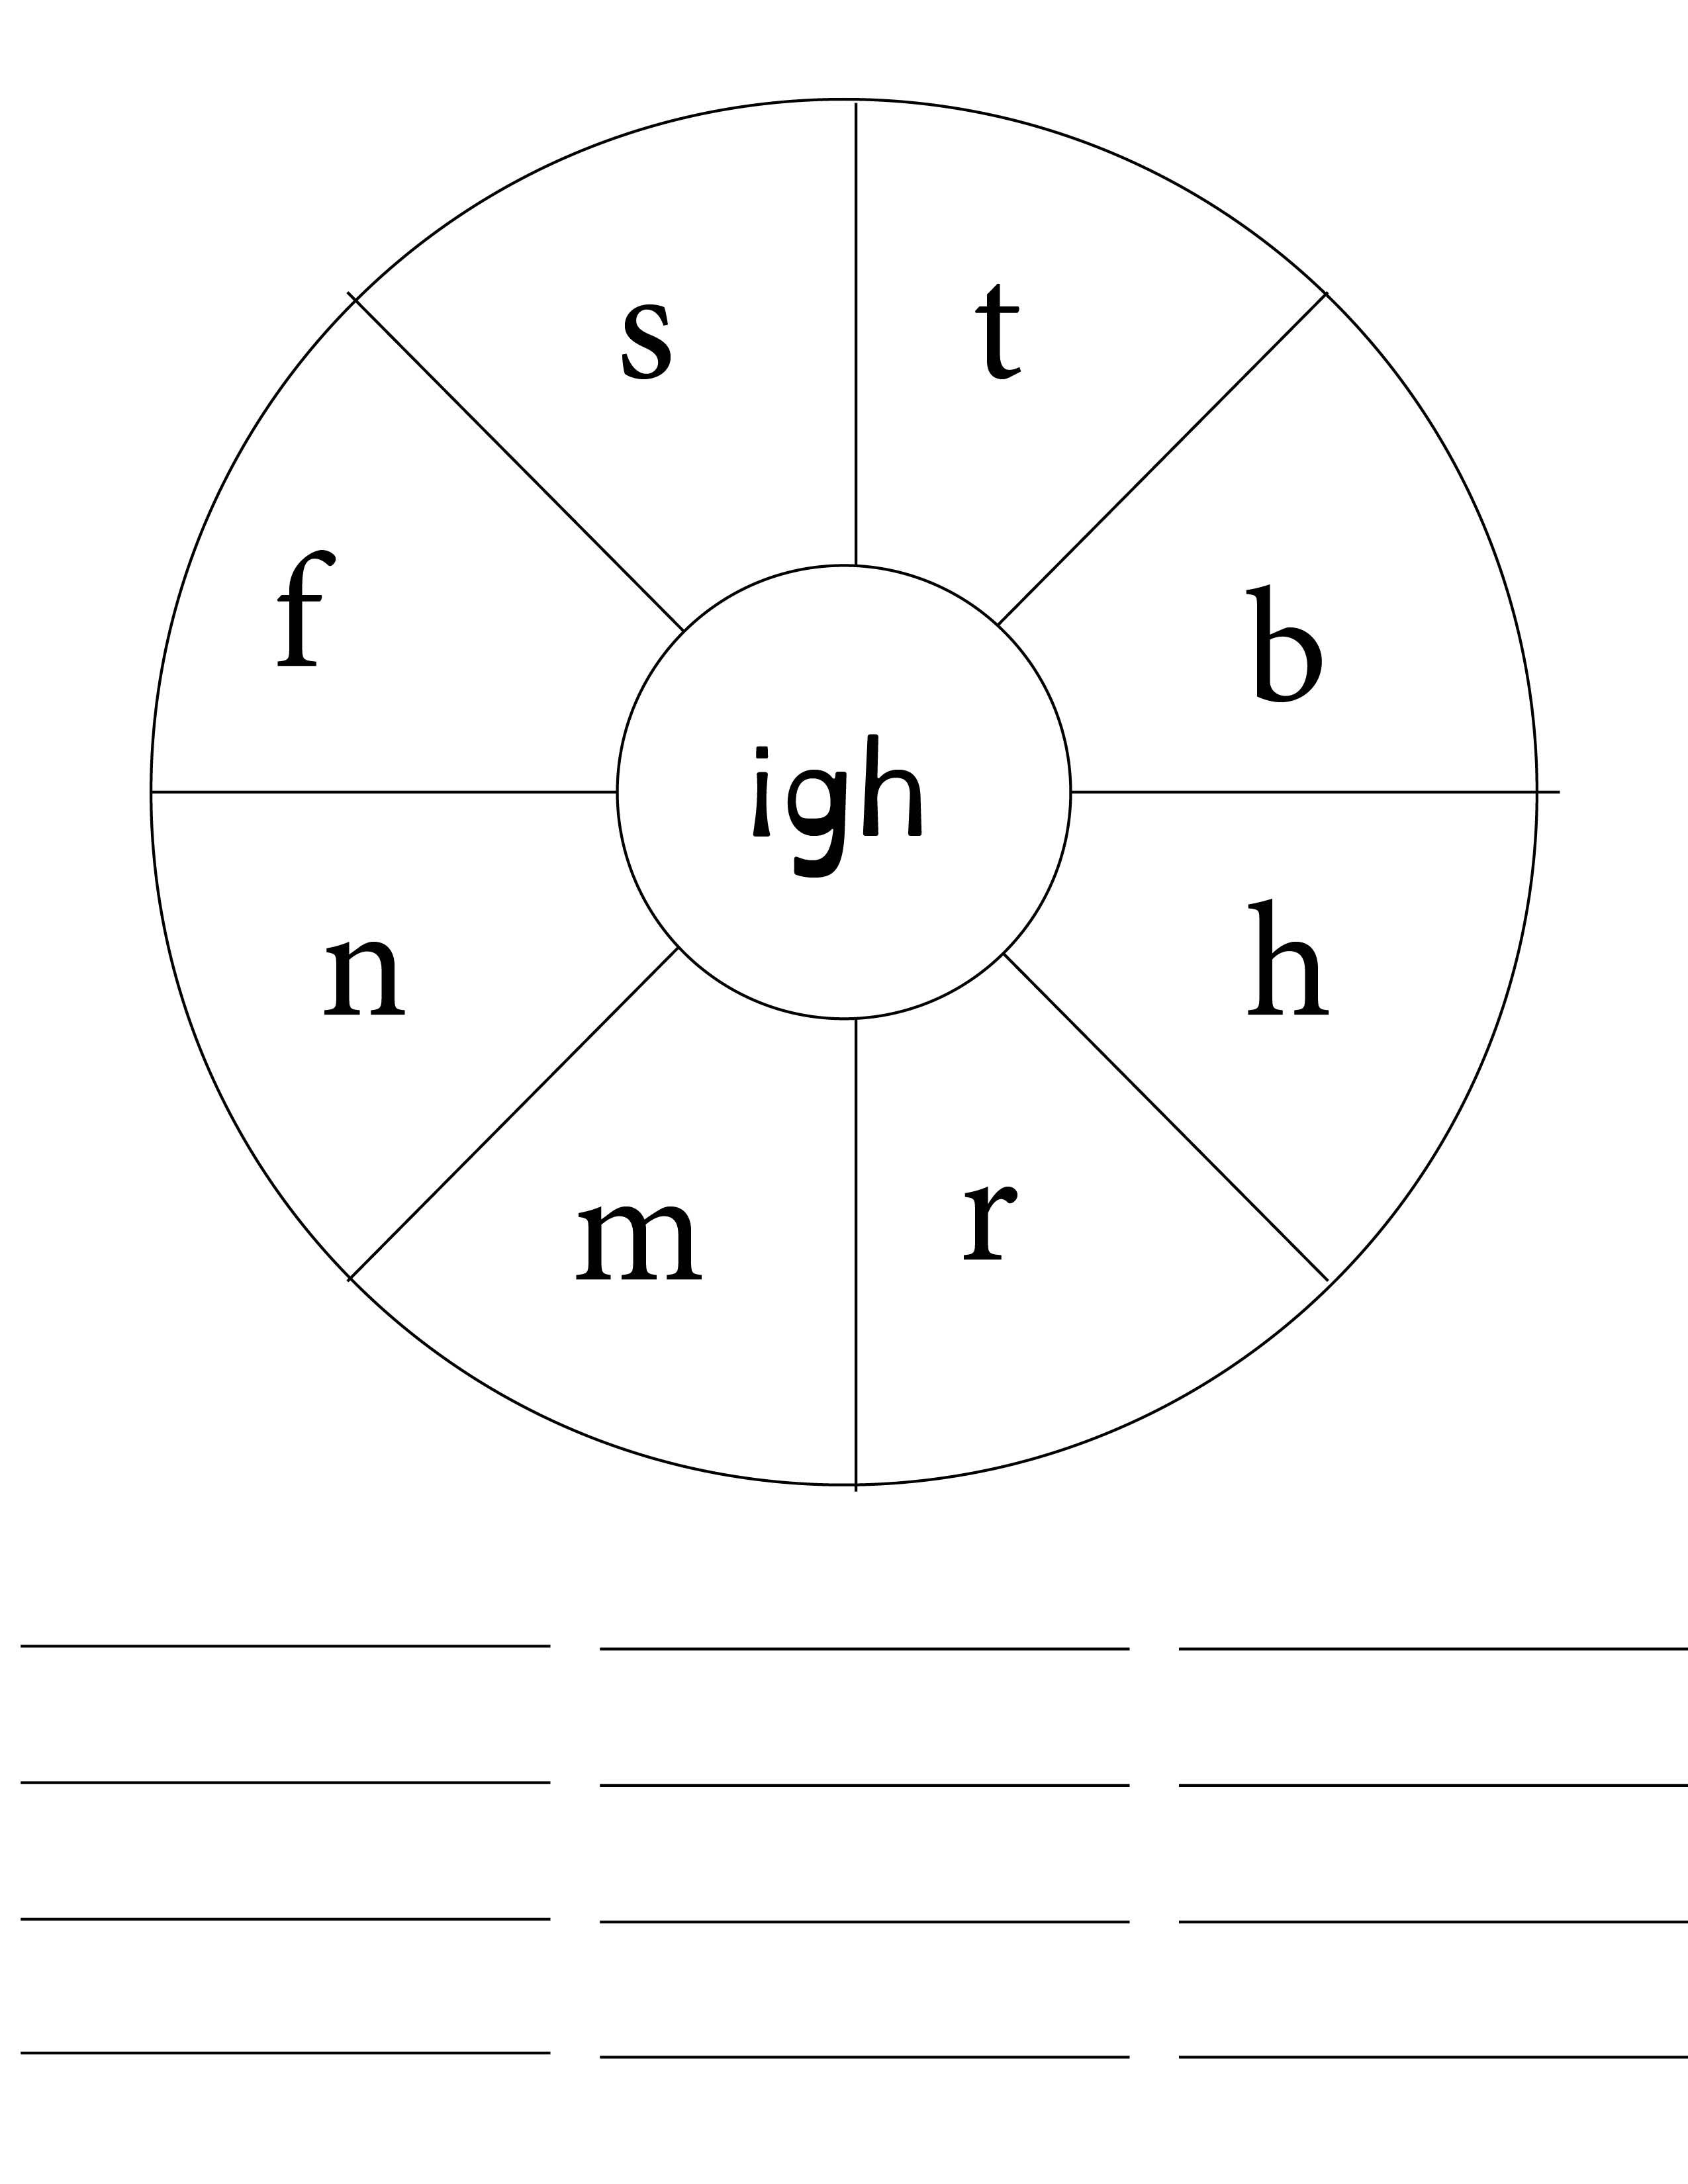 Make As Many Igh Words As You Can Letters Can Be Used